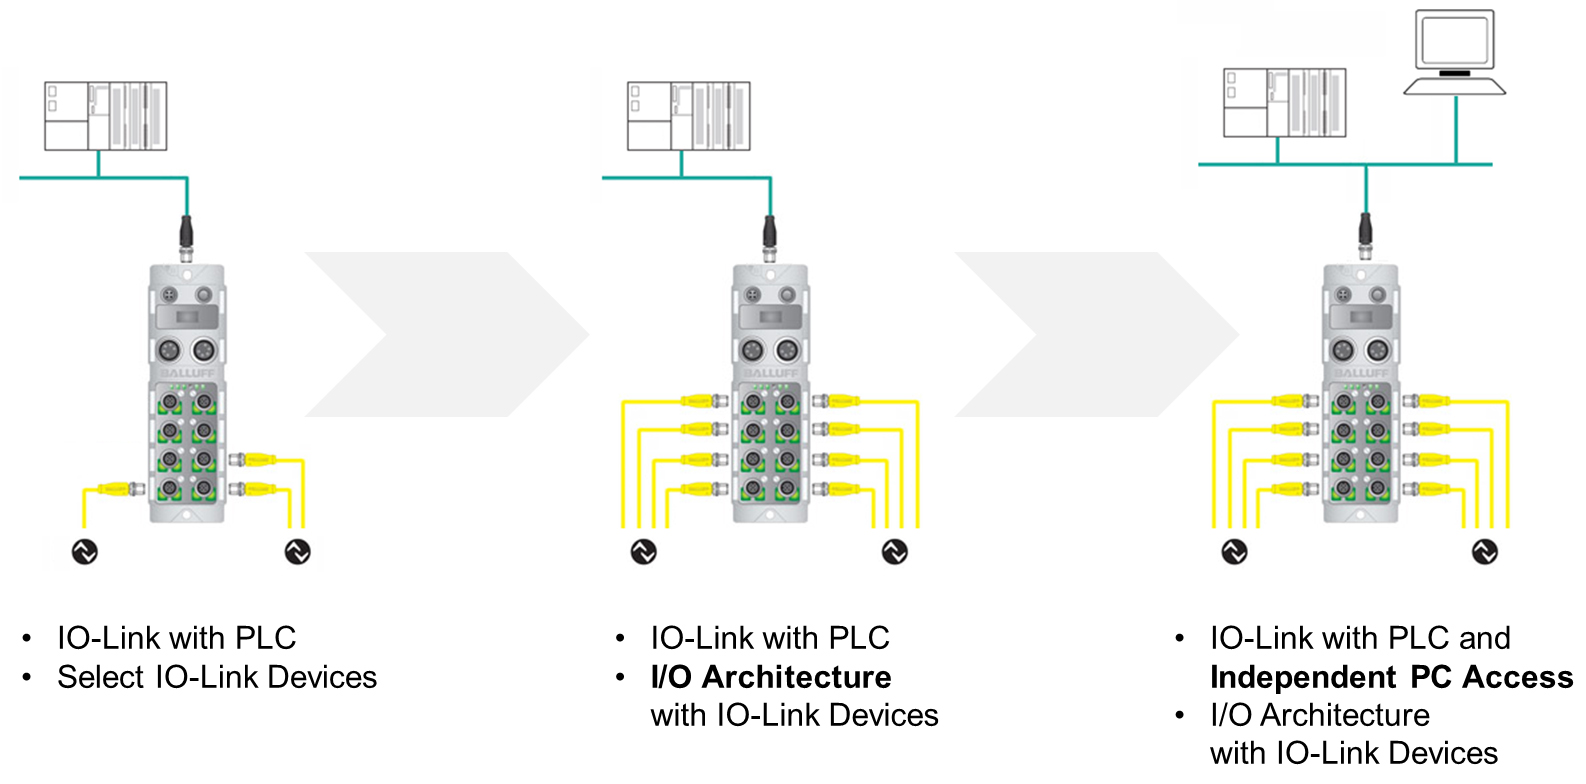 Scaling up to IIoT with IO-Link and Balluff's Virtual IP Address Concept